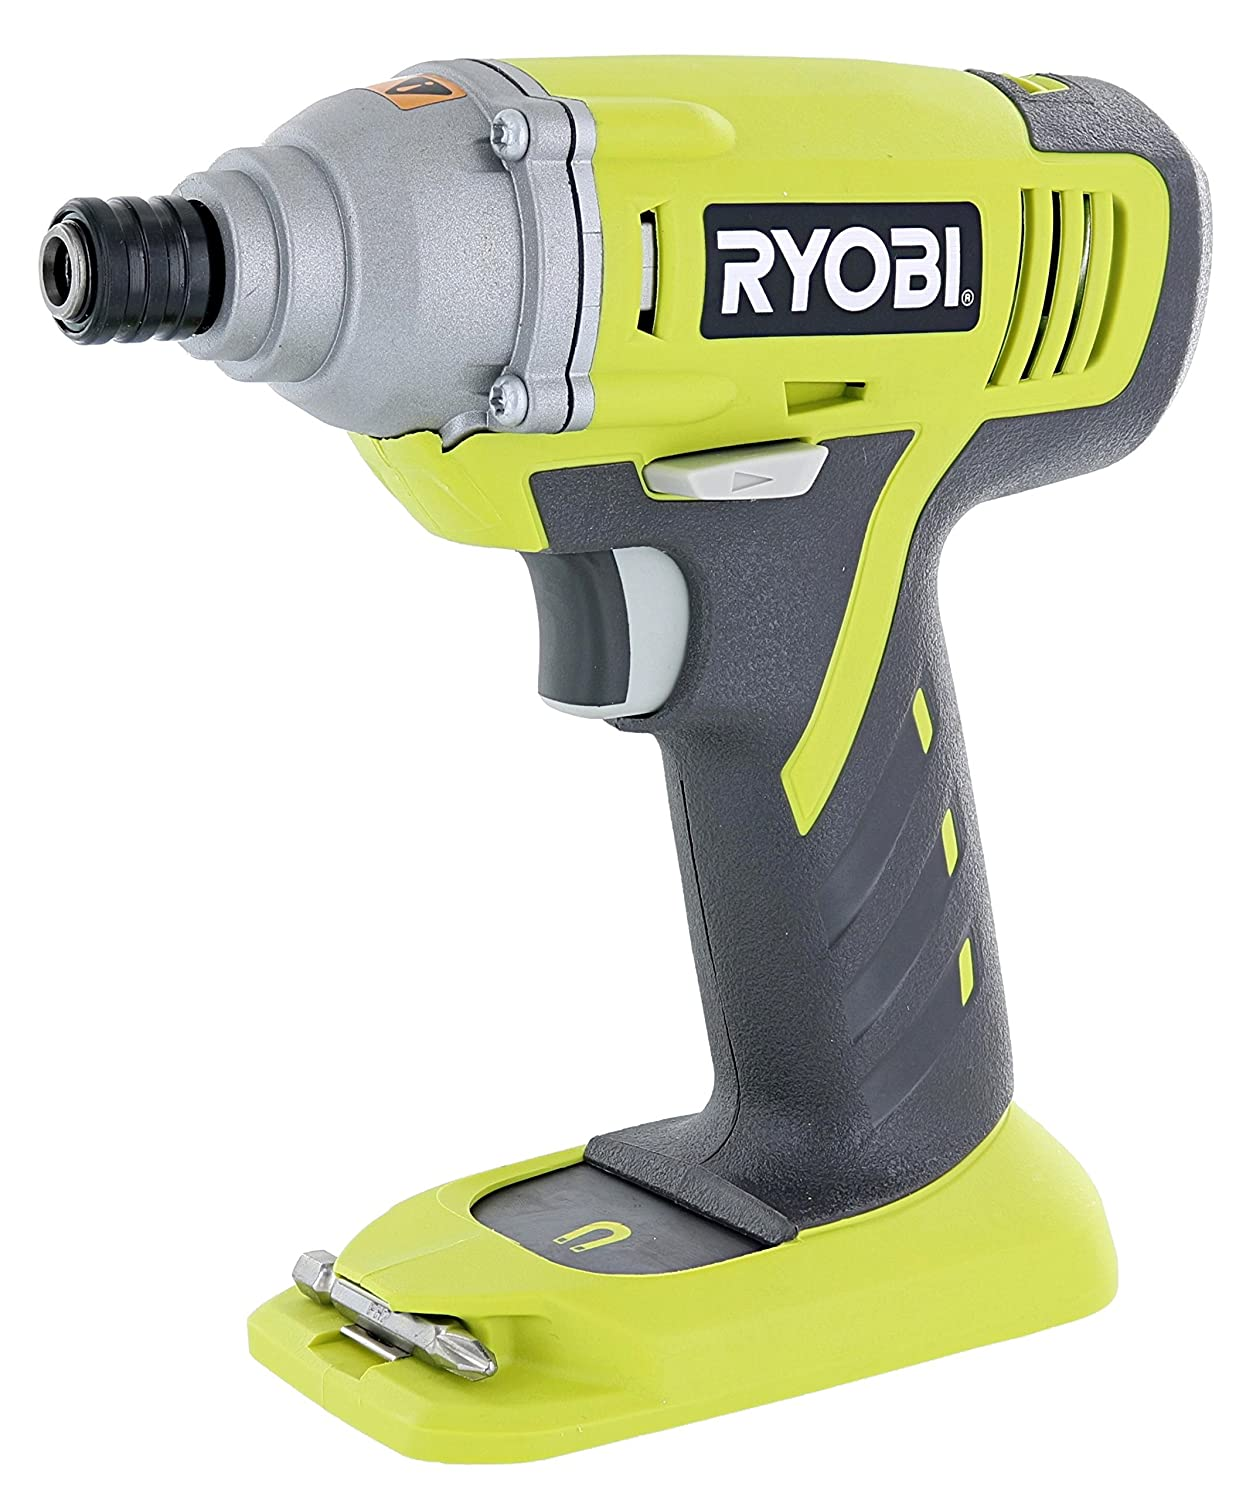 Ryobi P234g One 18-Volt Lithium Ion Cordless Impact Driver Battery Not Included Power Tool Only Renewed